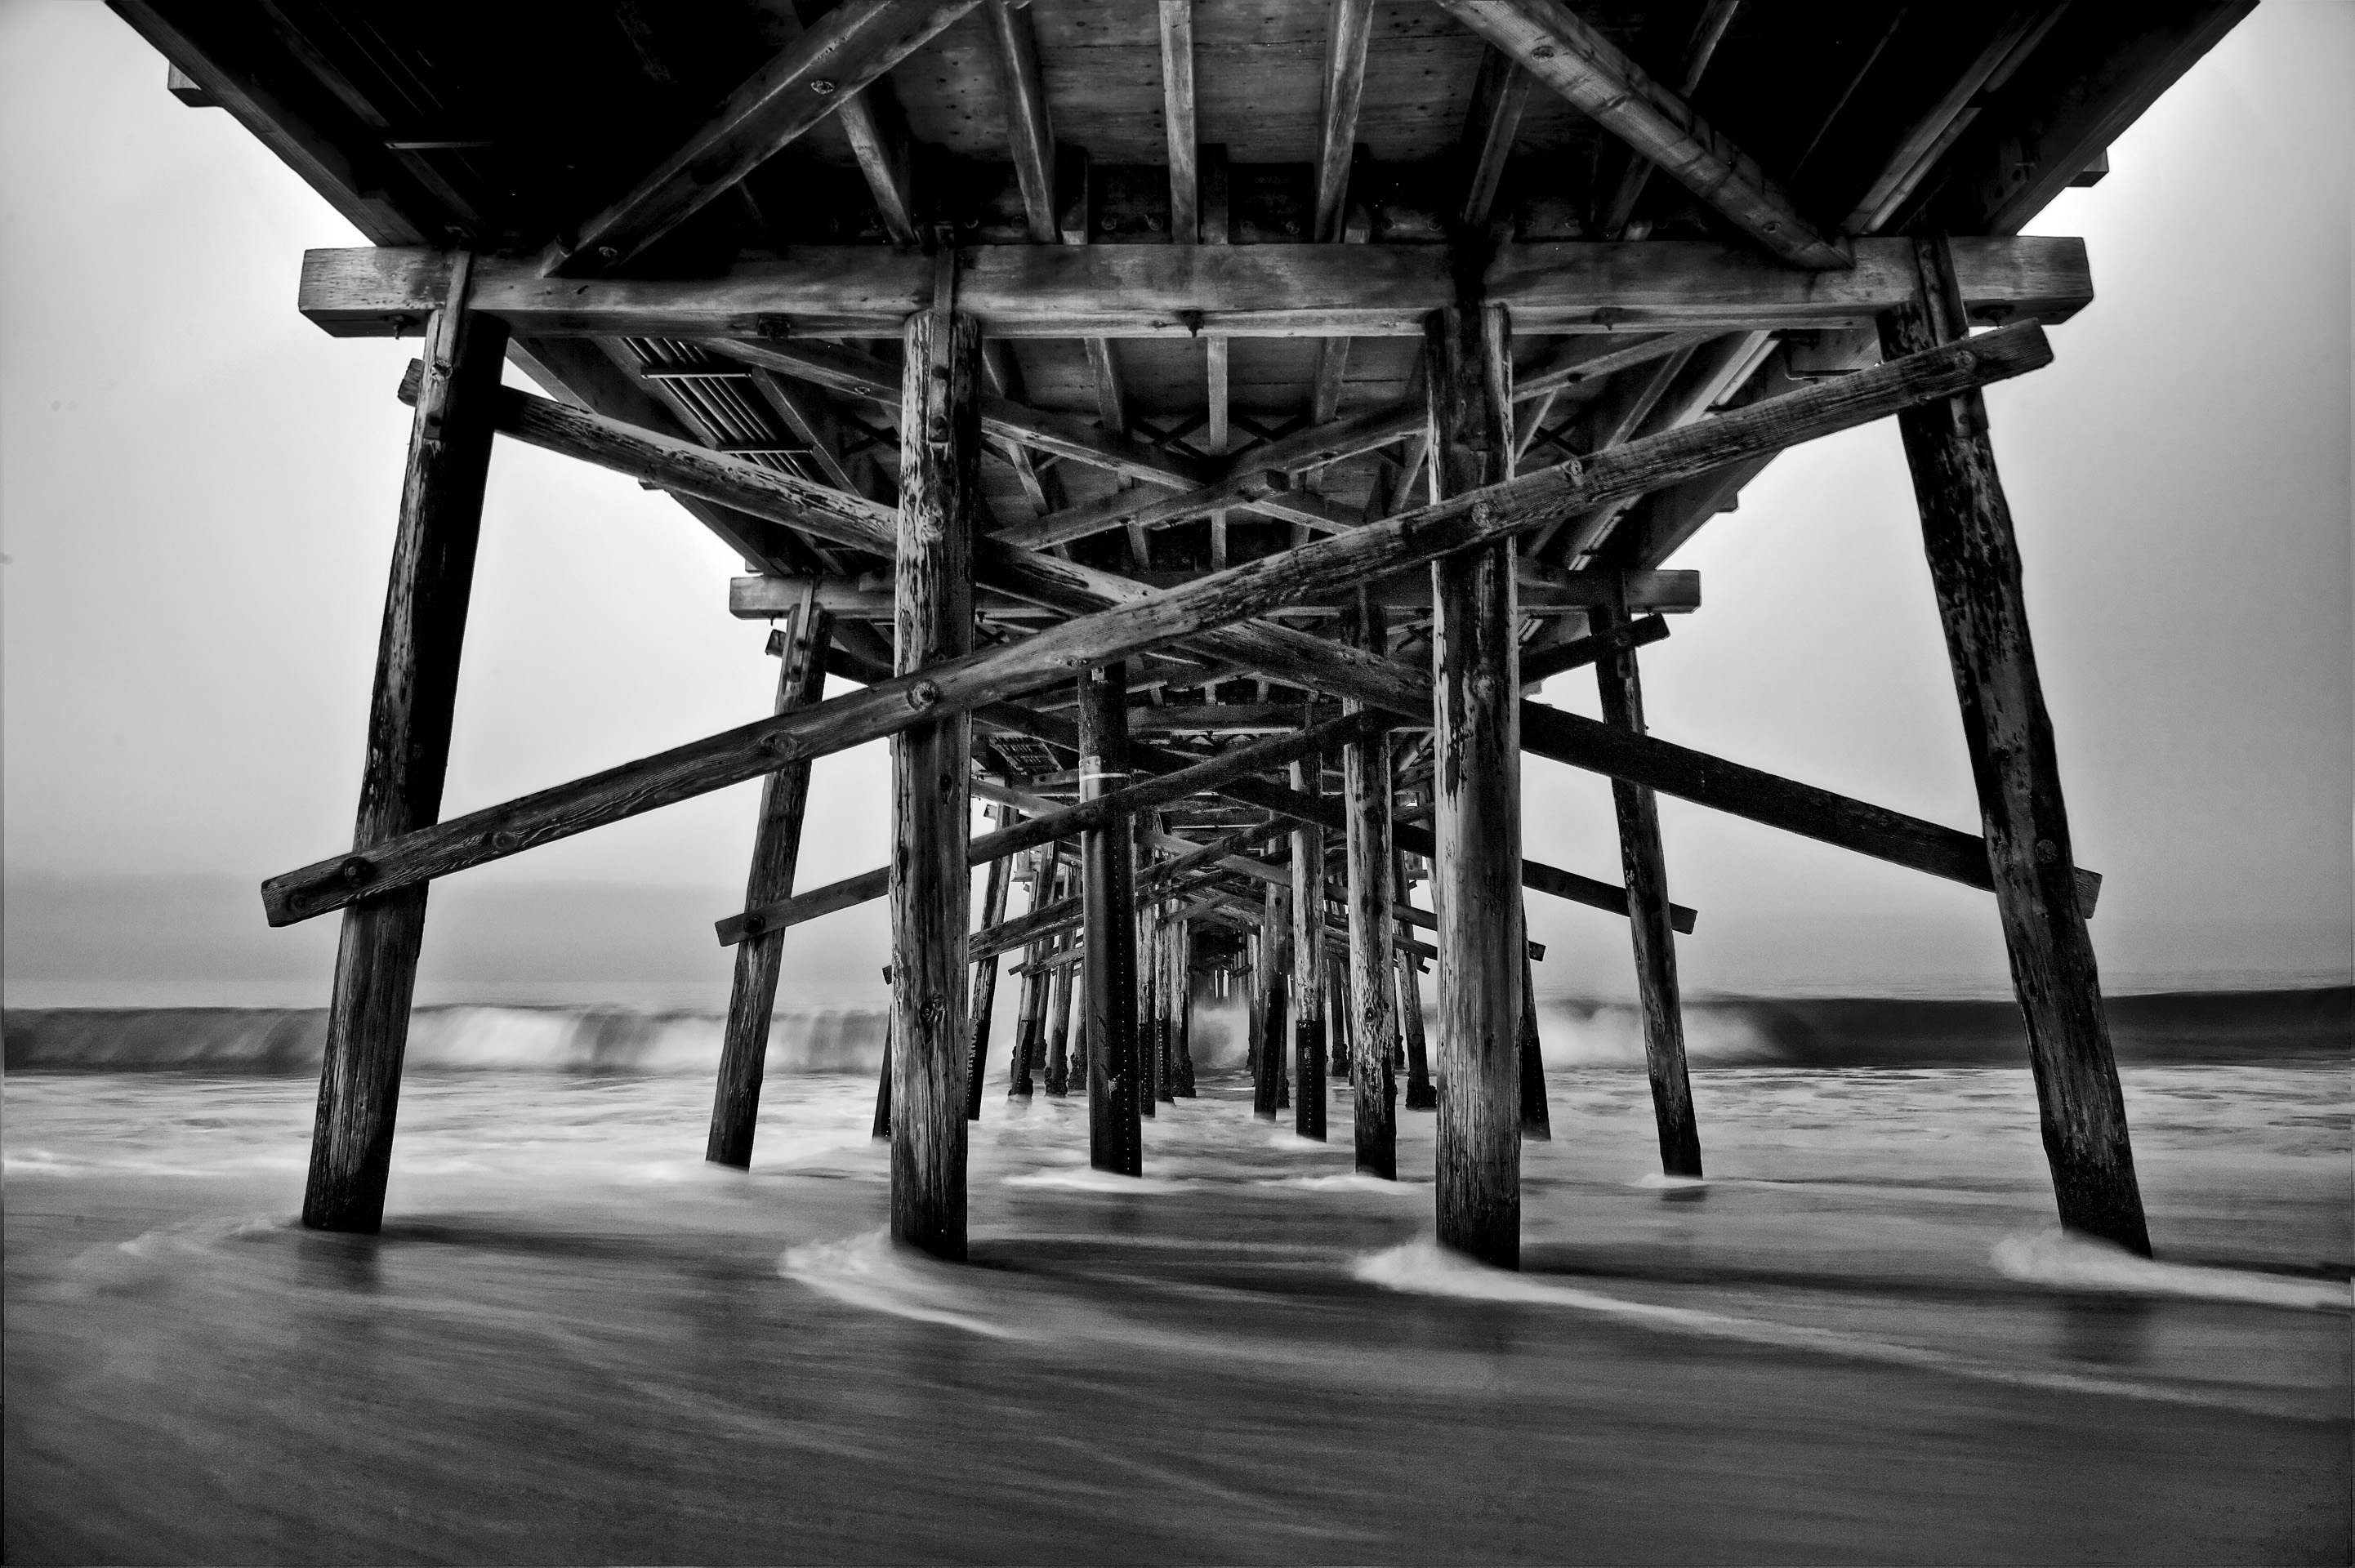 under the board walk